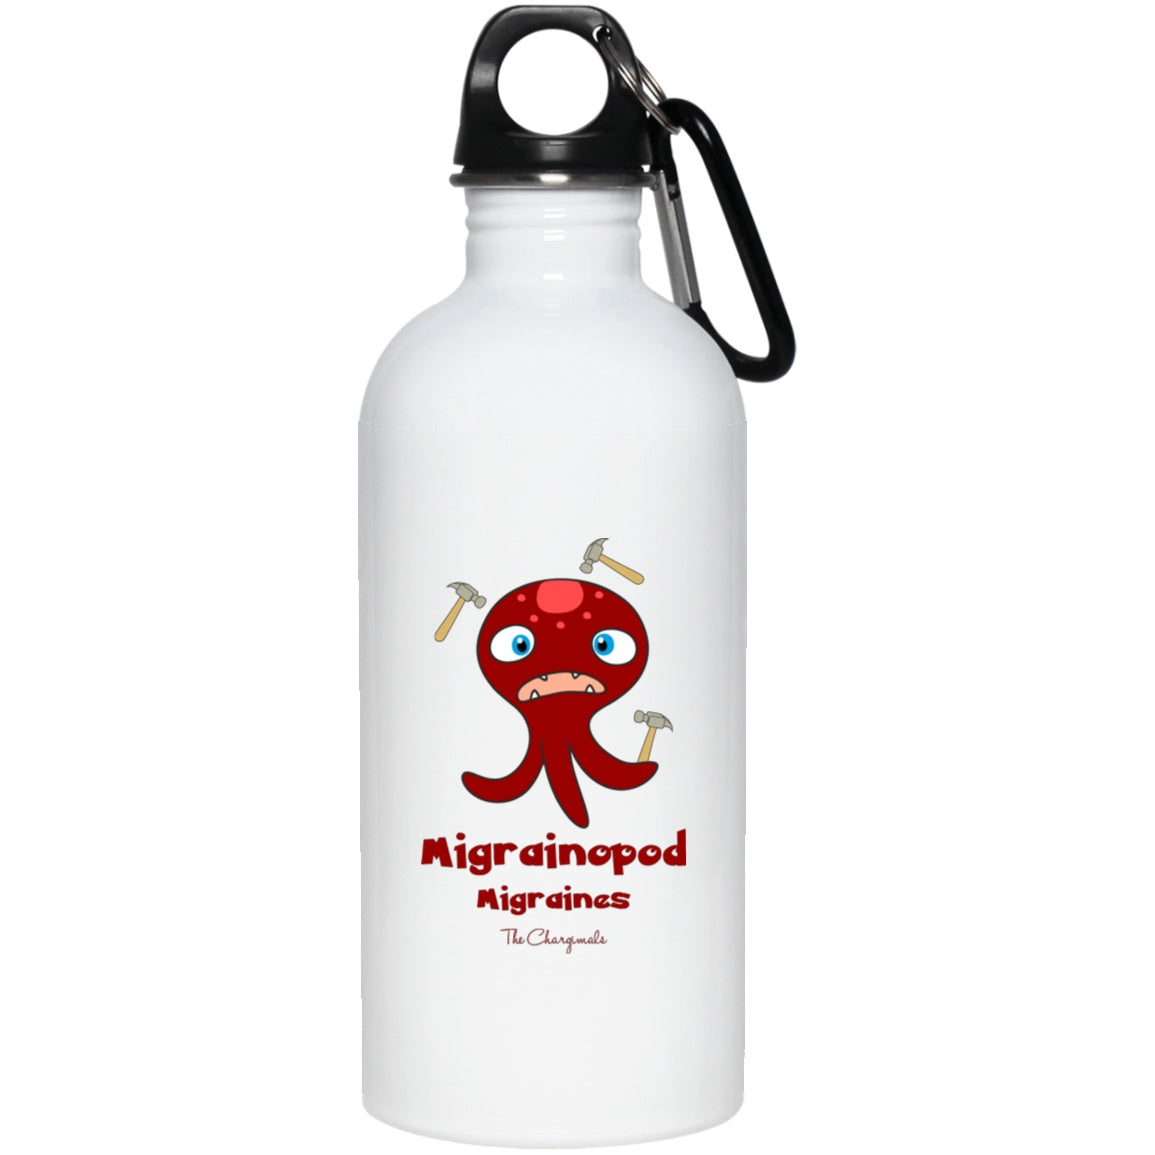 Pod the Migraine Monster Mug, Travel Mug And Water Bottle - The Unchargeables